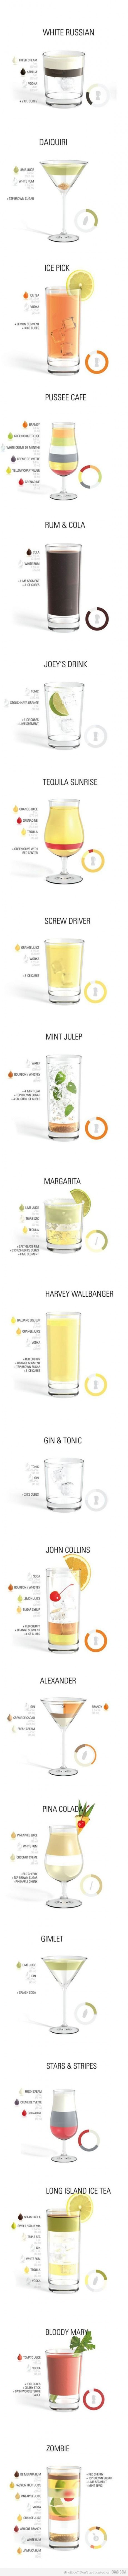 Visual Cocktail Recipes